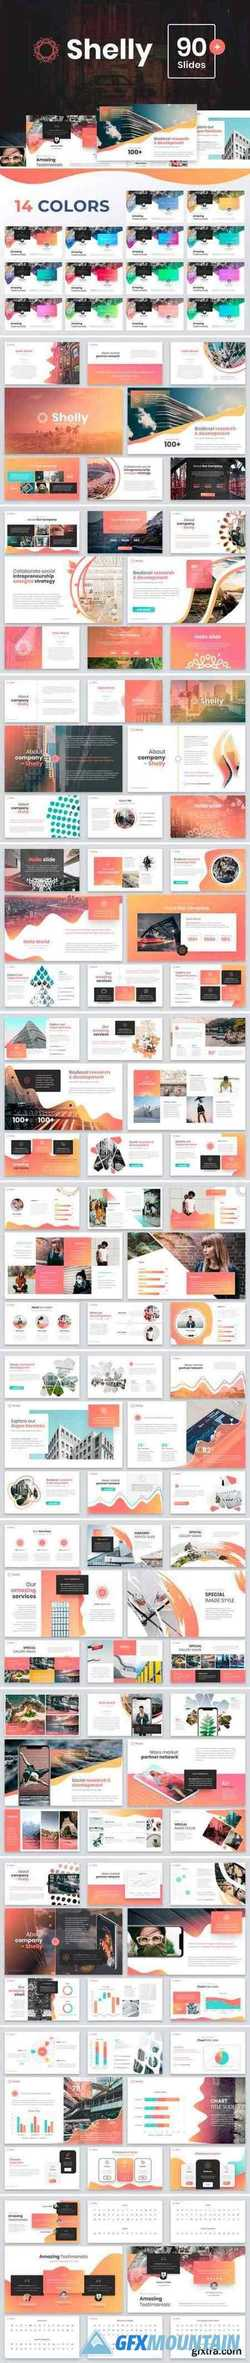 Shelly Powerpoint Template 2543049